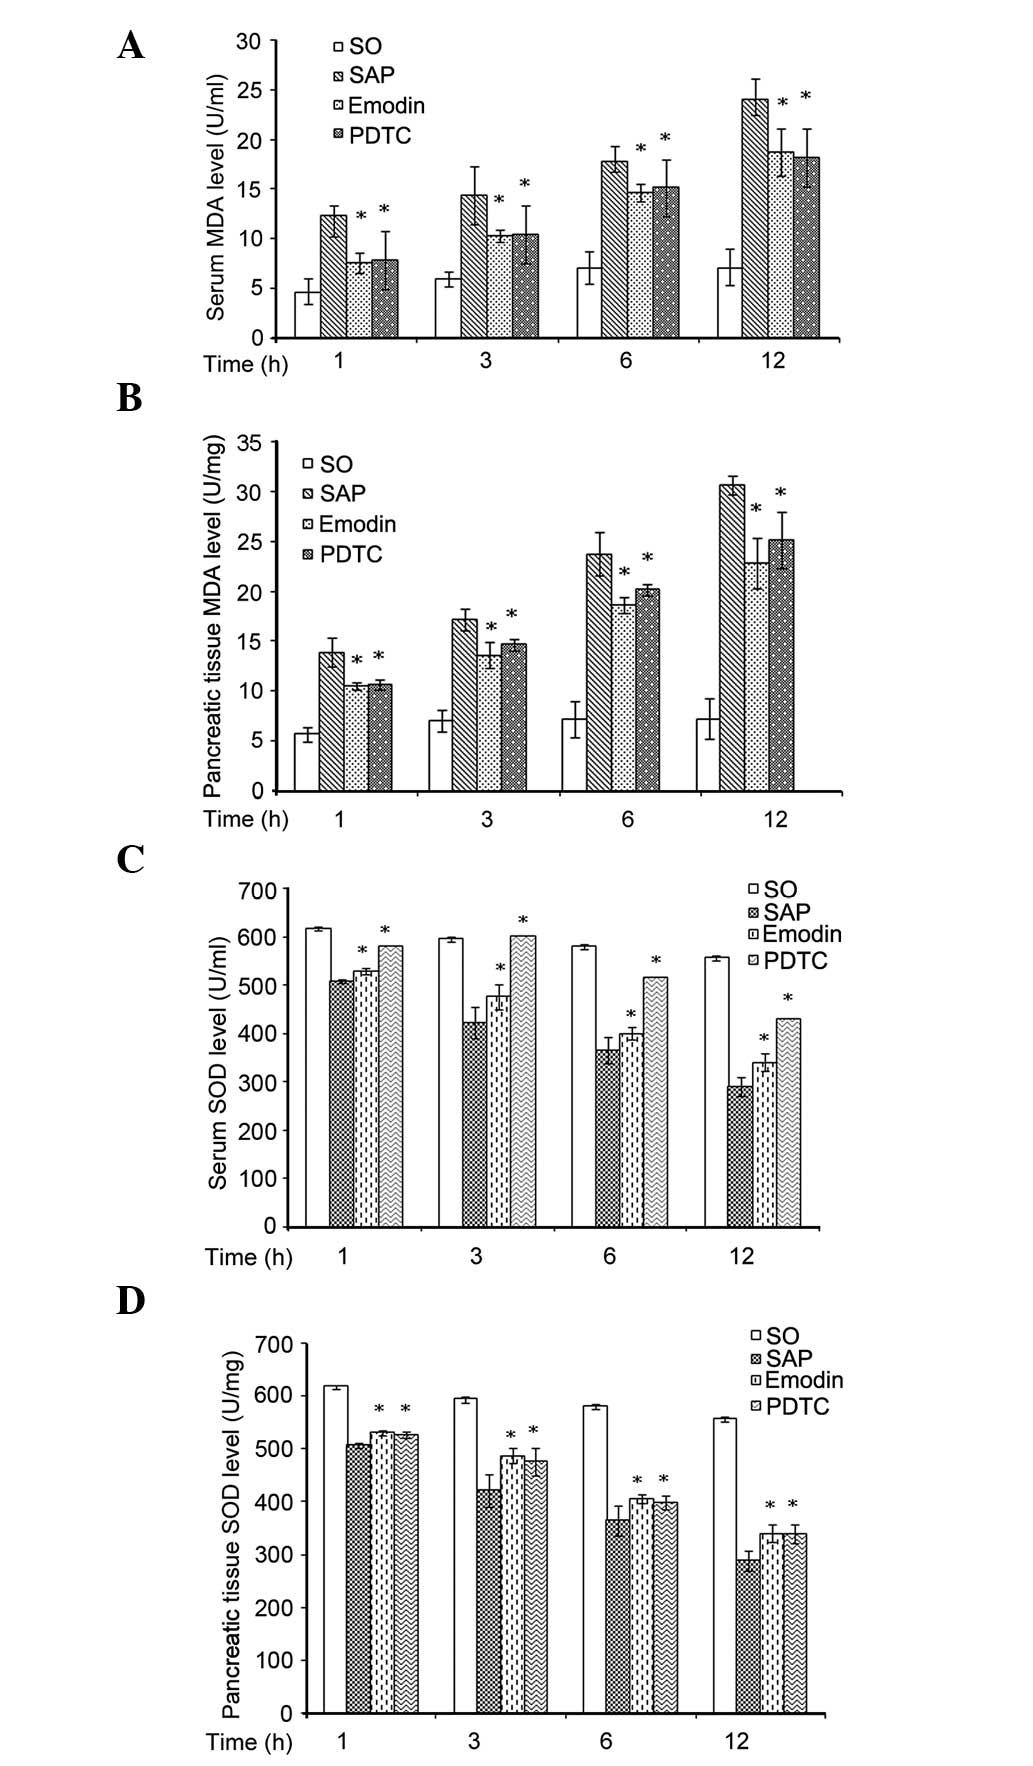 Emodin Has A Protective Effect In Cases Of Severe Acute Pancreatitis Sap 2 Block Diagram Induction Markedly Increased The Activation Nf B Pancreatic Tissue While Application Or Pdtc Was Observed To Inhibit This